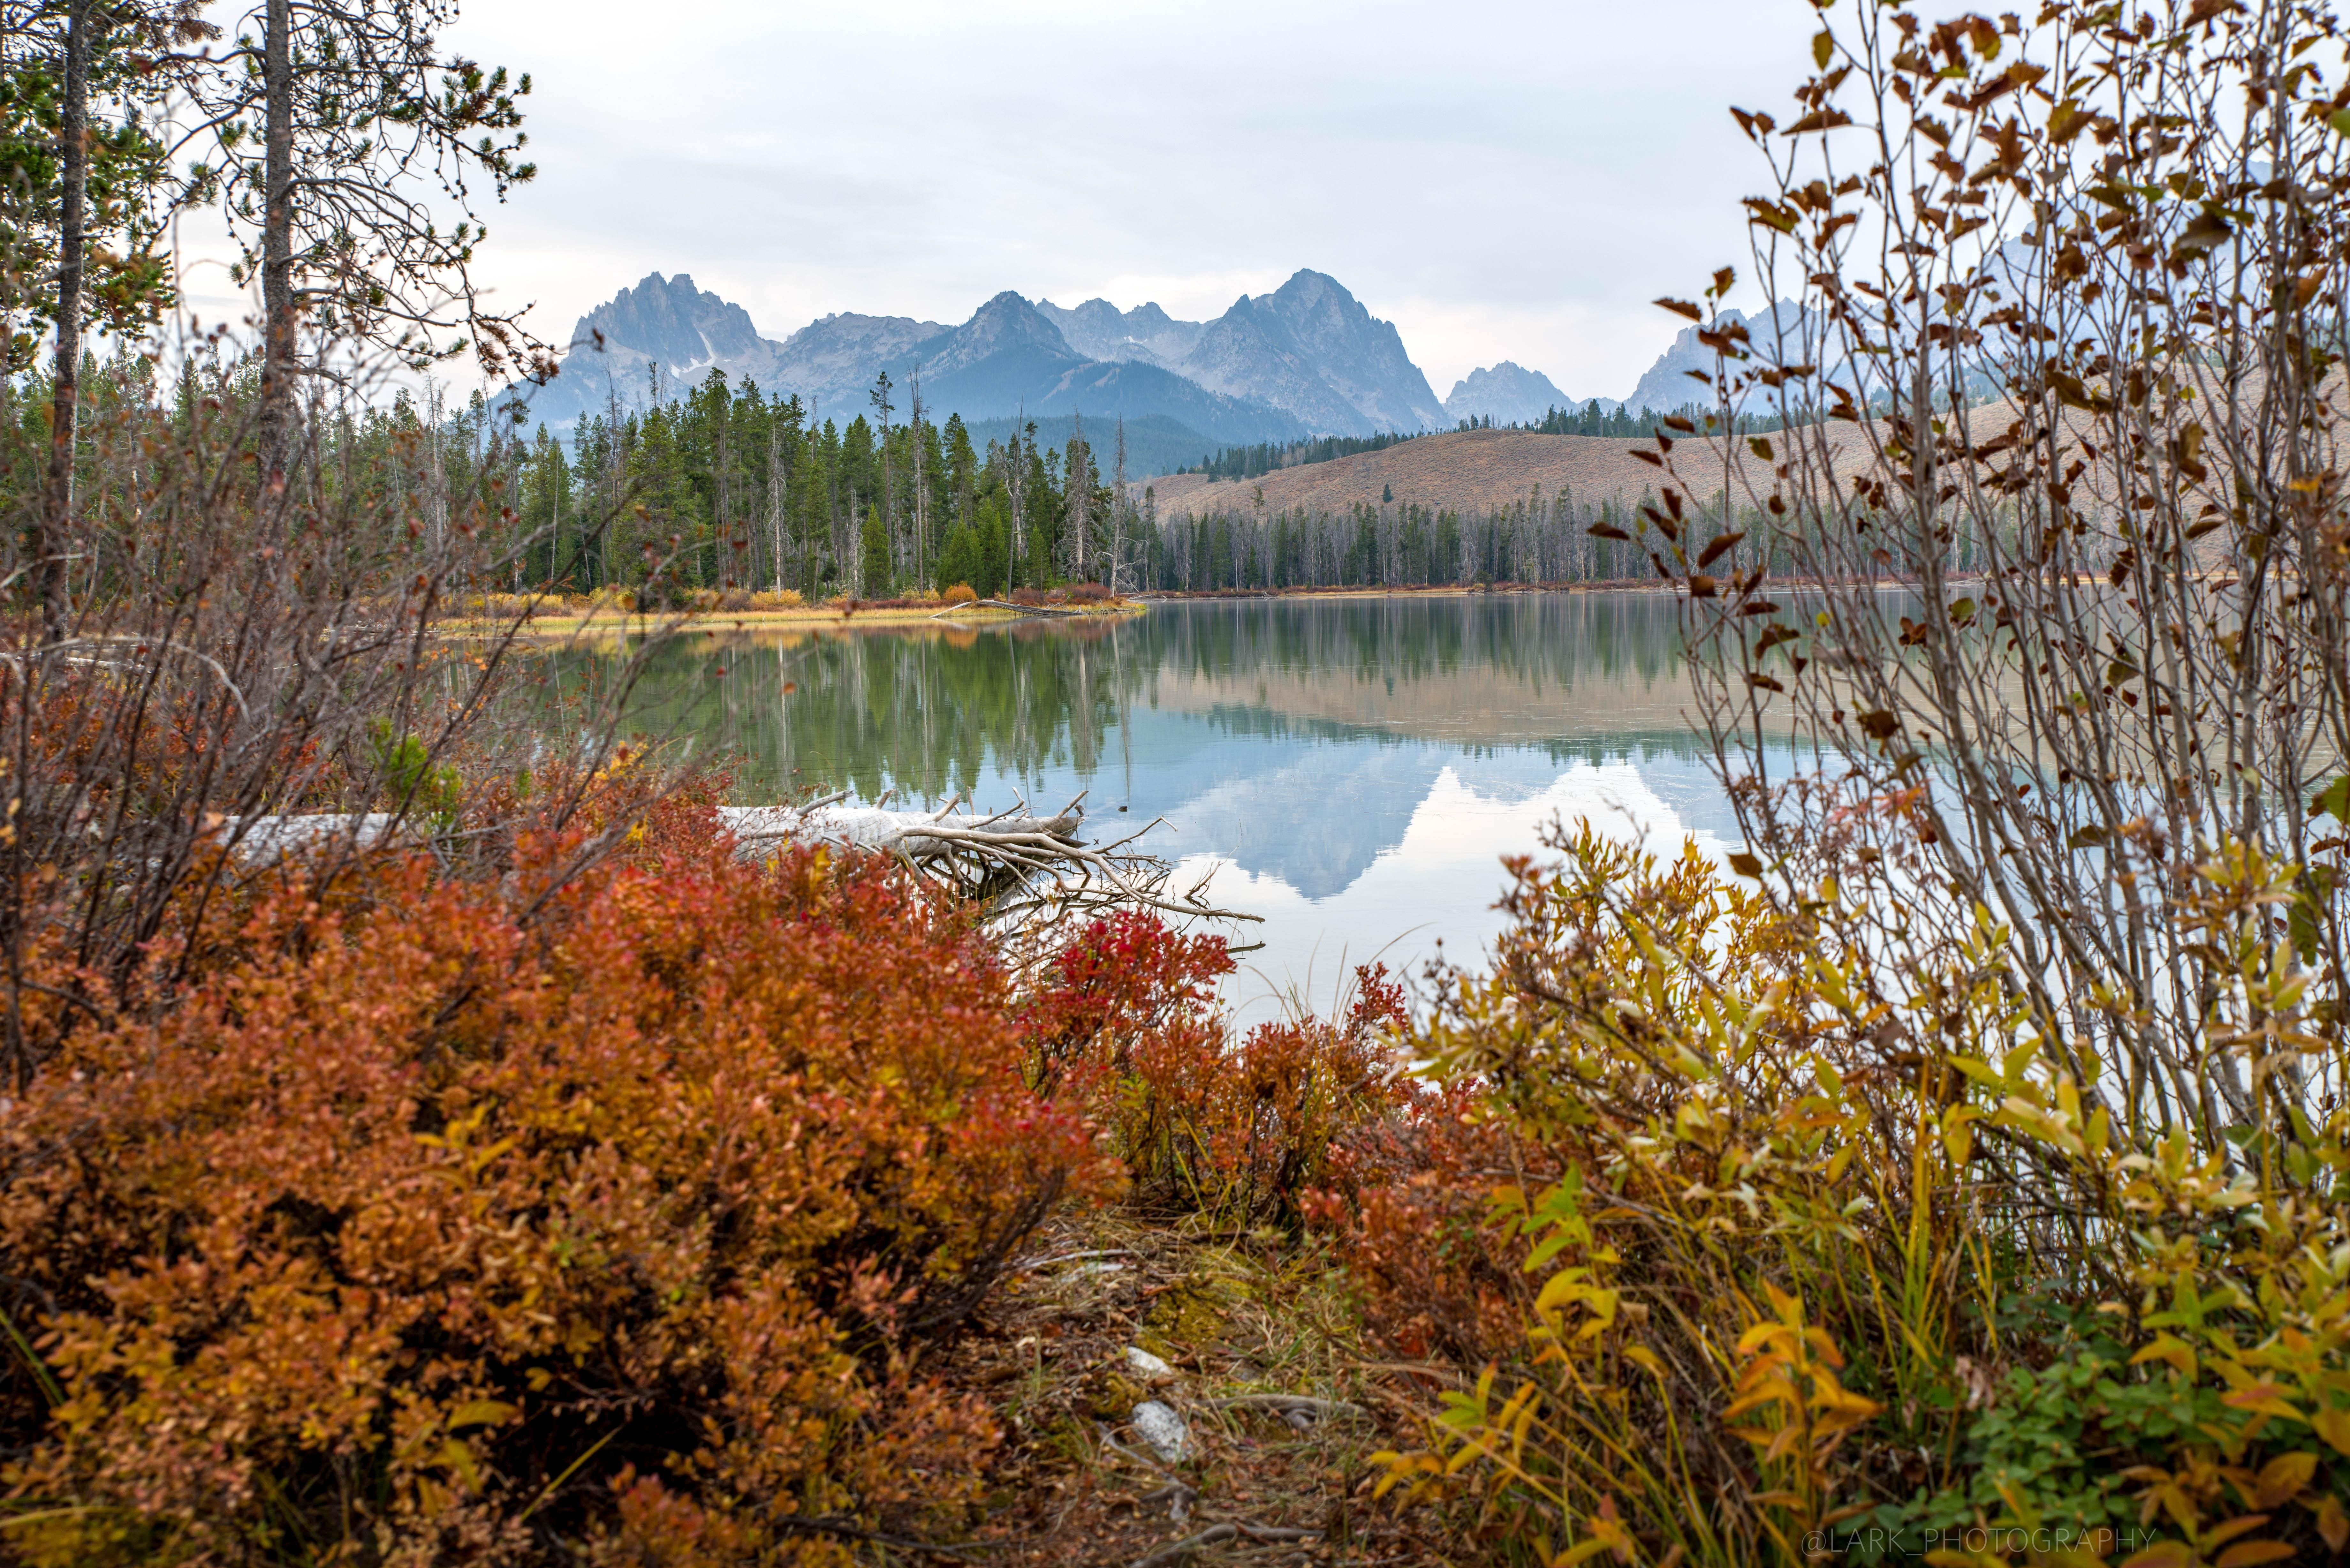 Pin by Erna Jaksic on Nature Sawtooth mountains